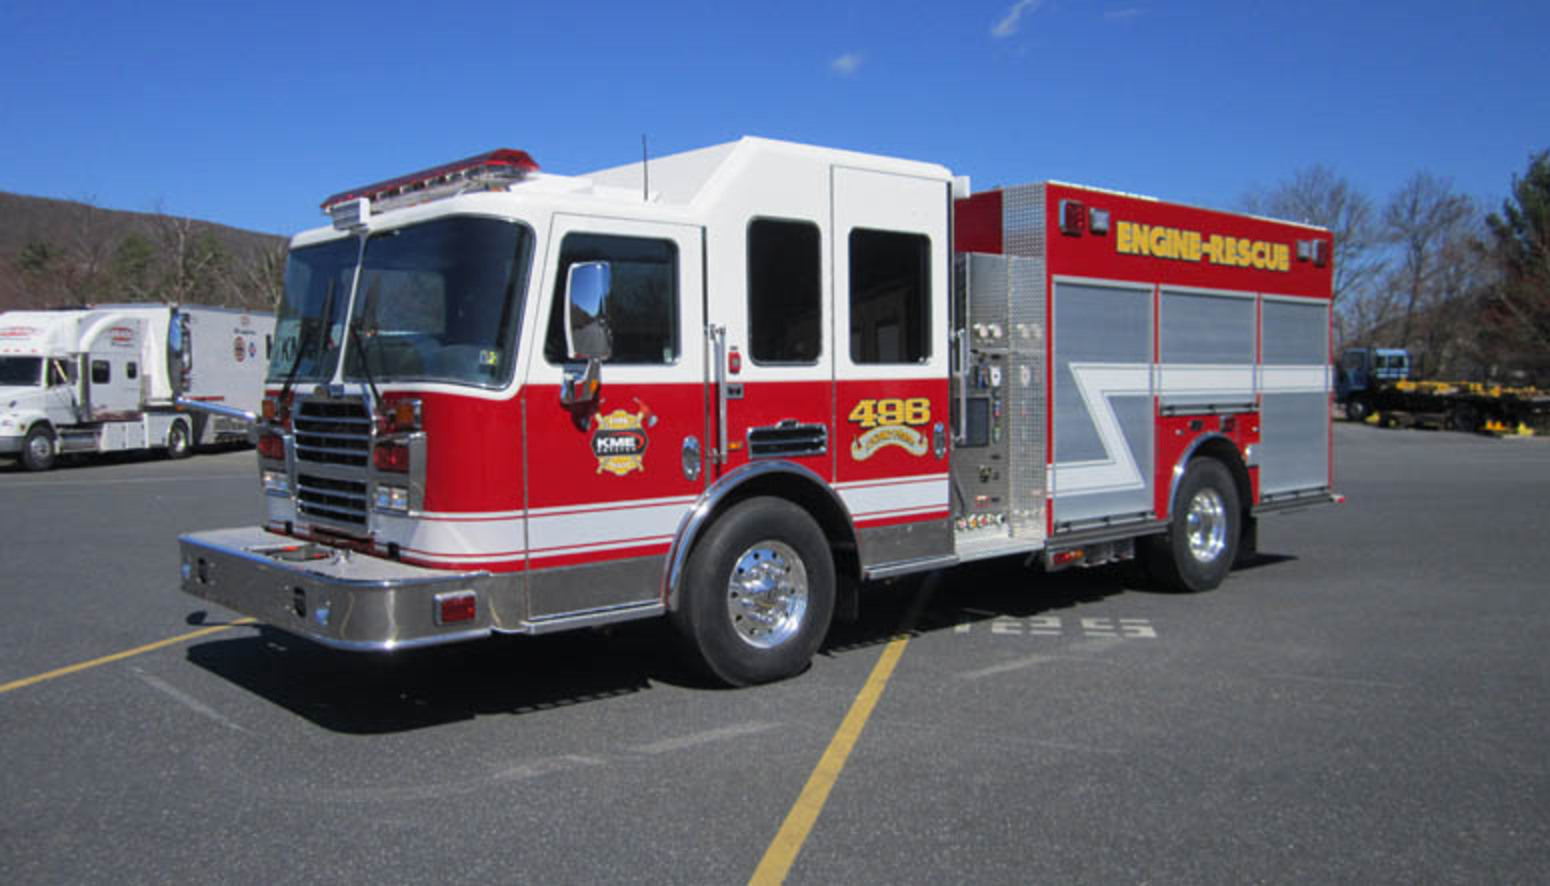 Kme pumper photo - 10